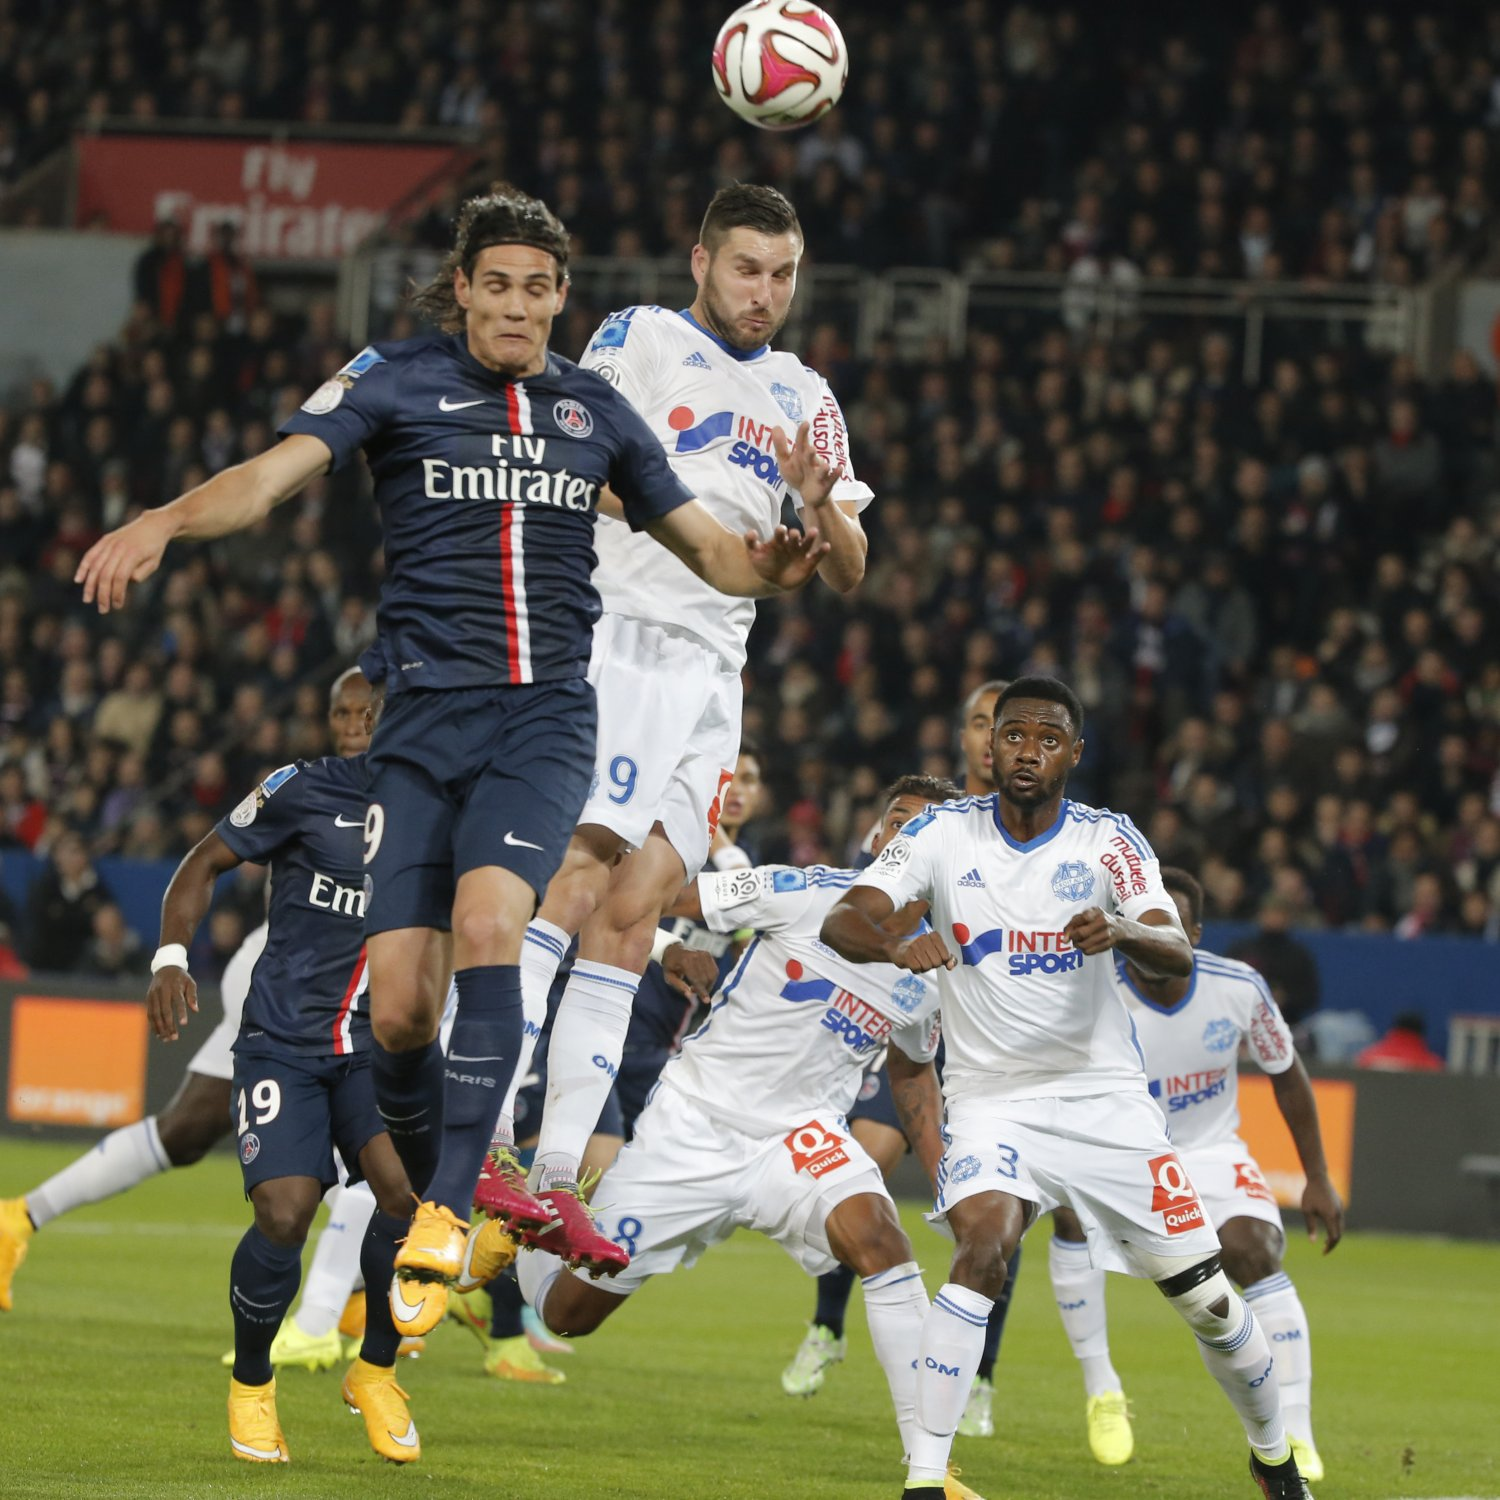 PSG Vs. Marseille: Score And Reaction From Ligue 1 Game